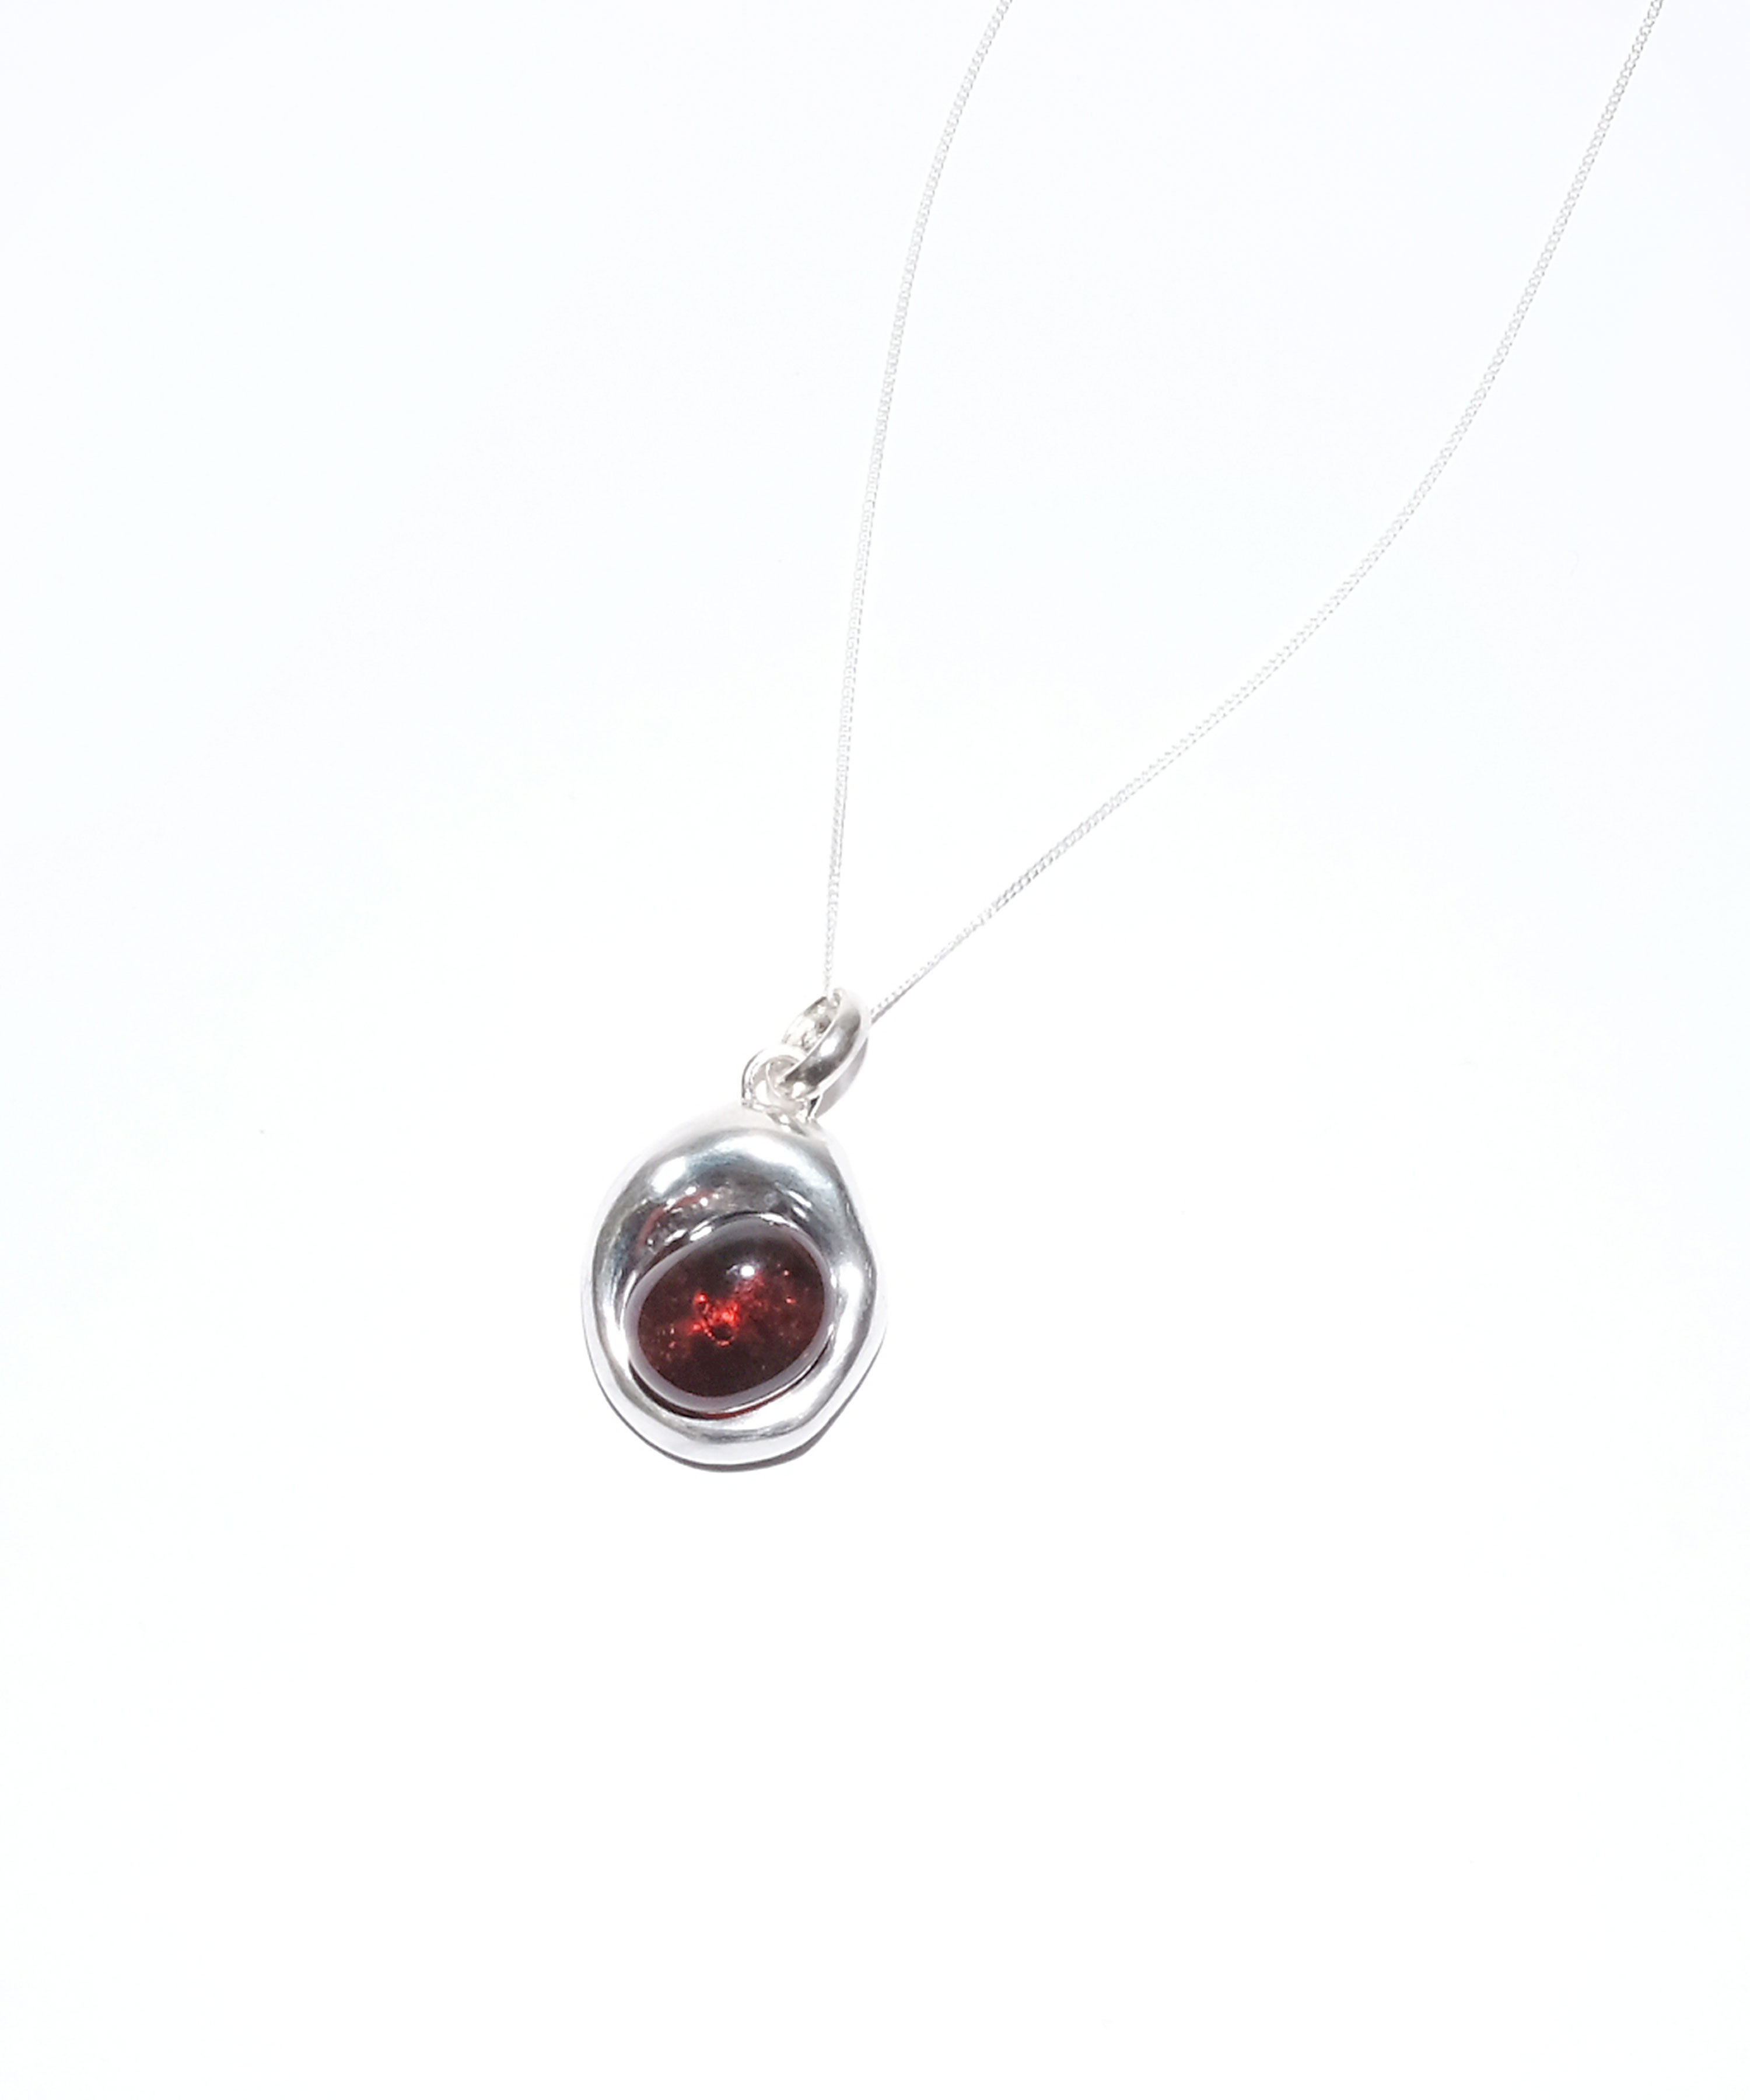 GLASS STONE NECKLACE